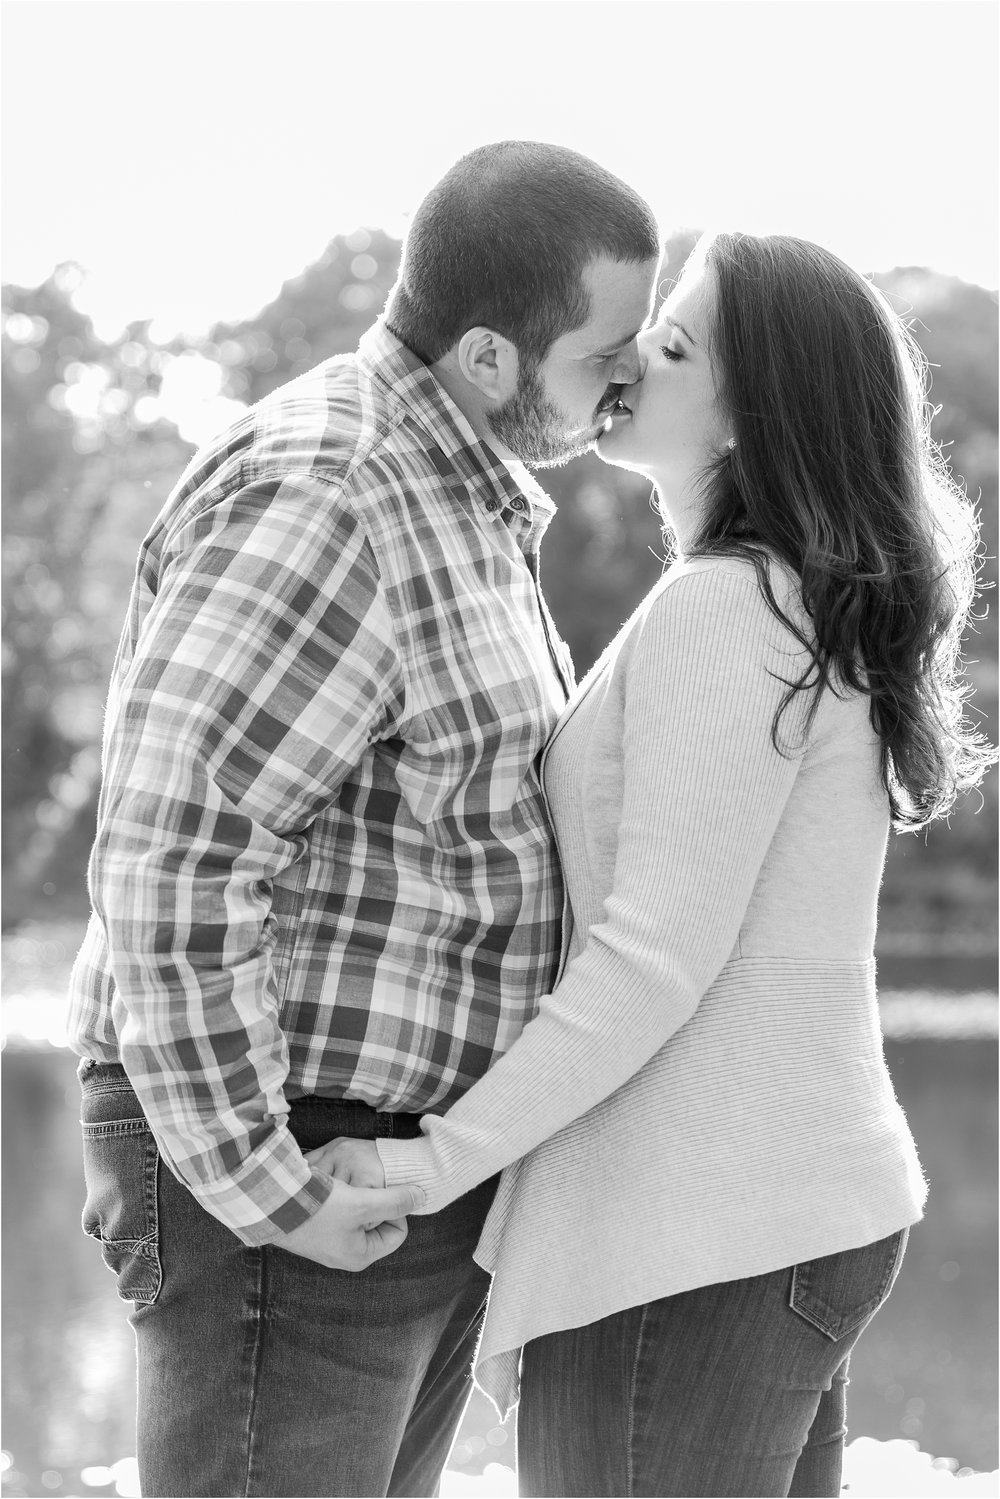 candid-romantic-summer-engagement-photos-at-hidden-lake-gardens-and-black-fire-winery-in-tipton-mi-by-courtney-carolyn-photography_0028.jpg